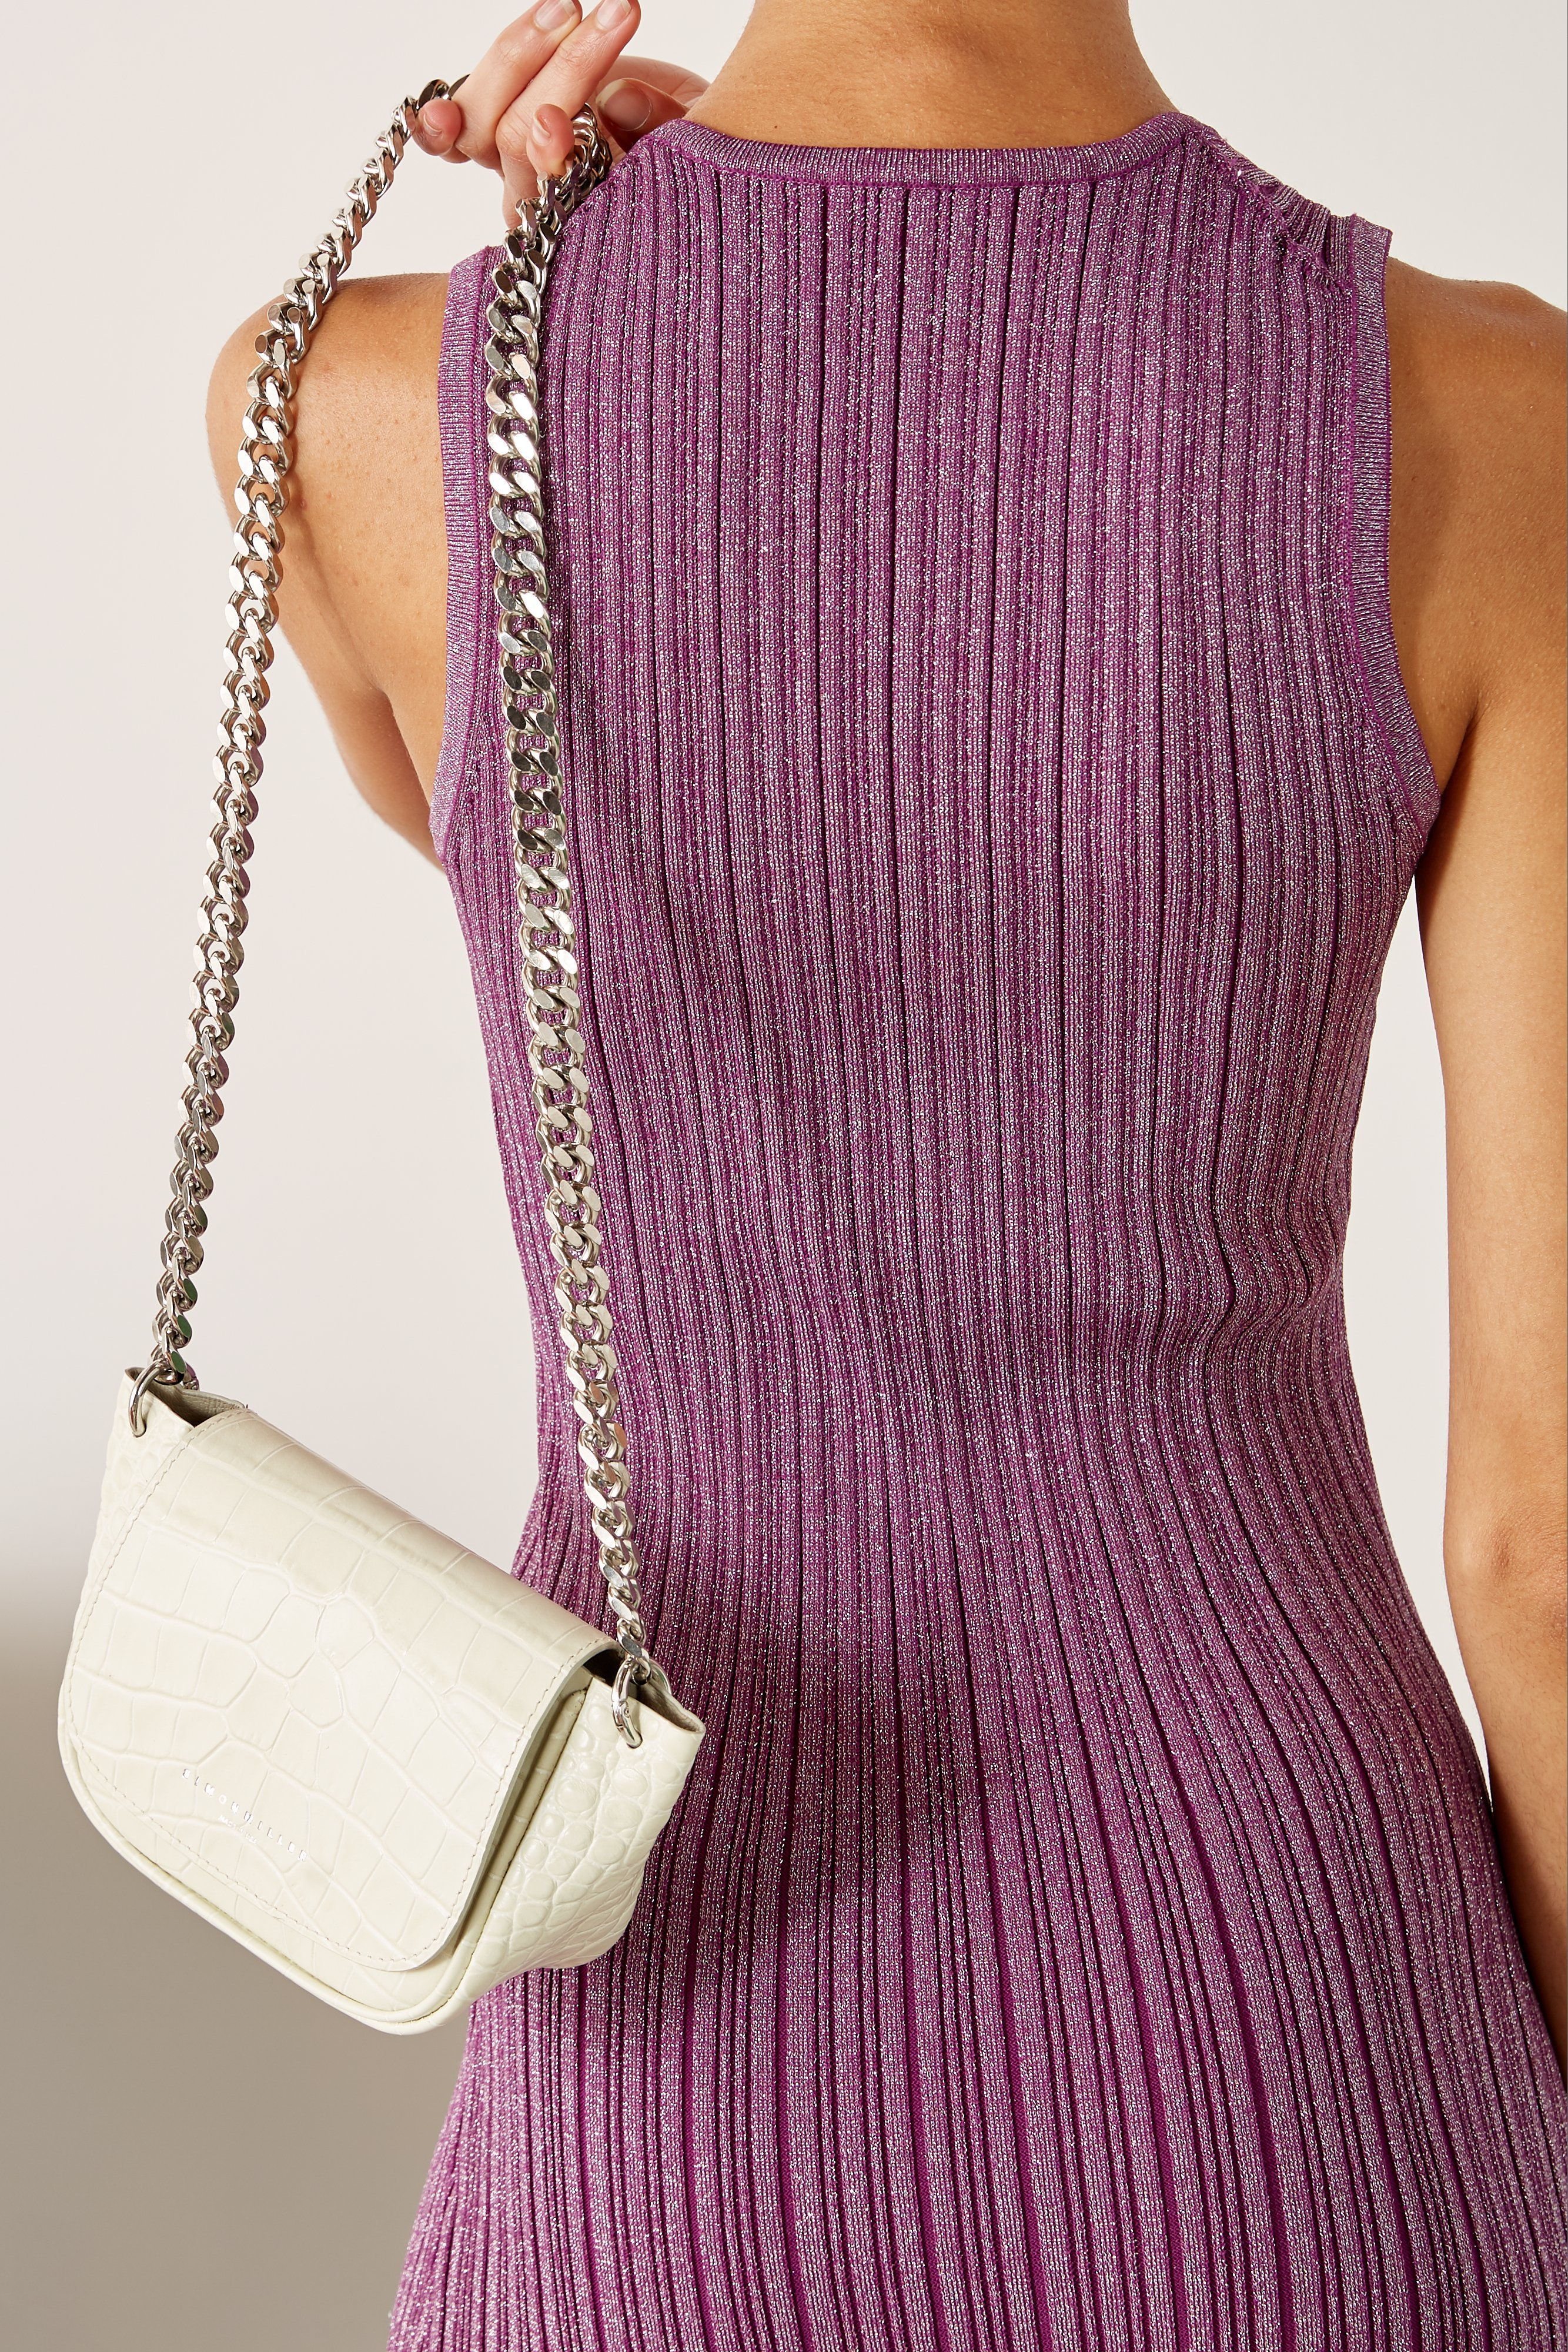 Mini Bend Bag in White Croc by Simon Miller - 3